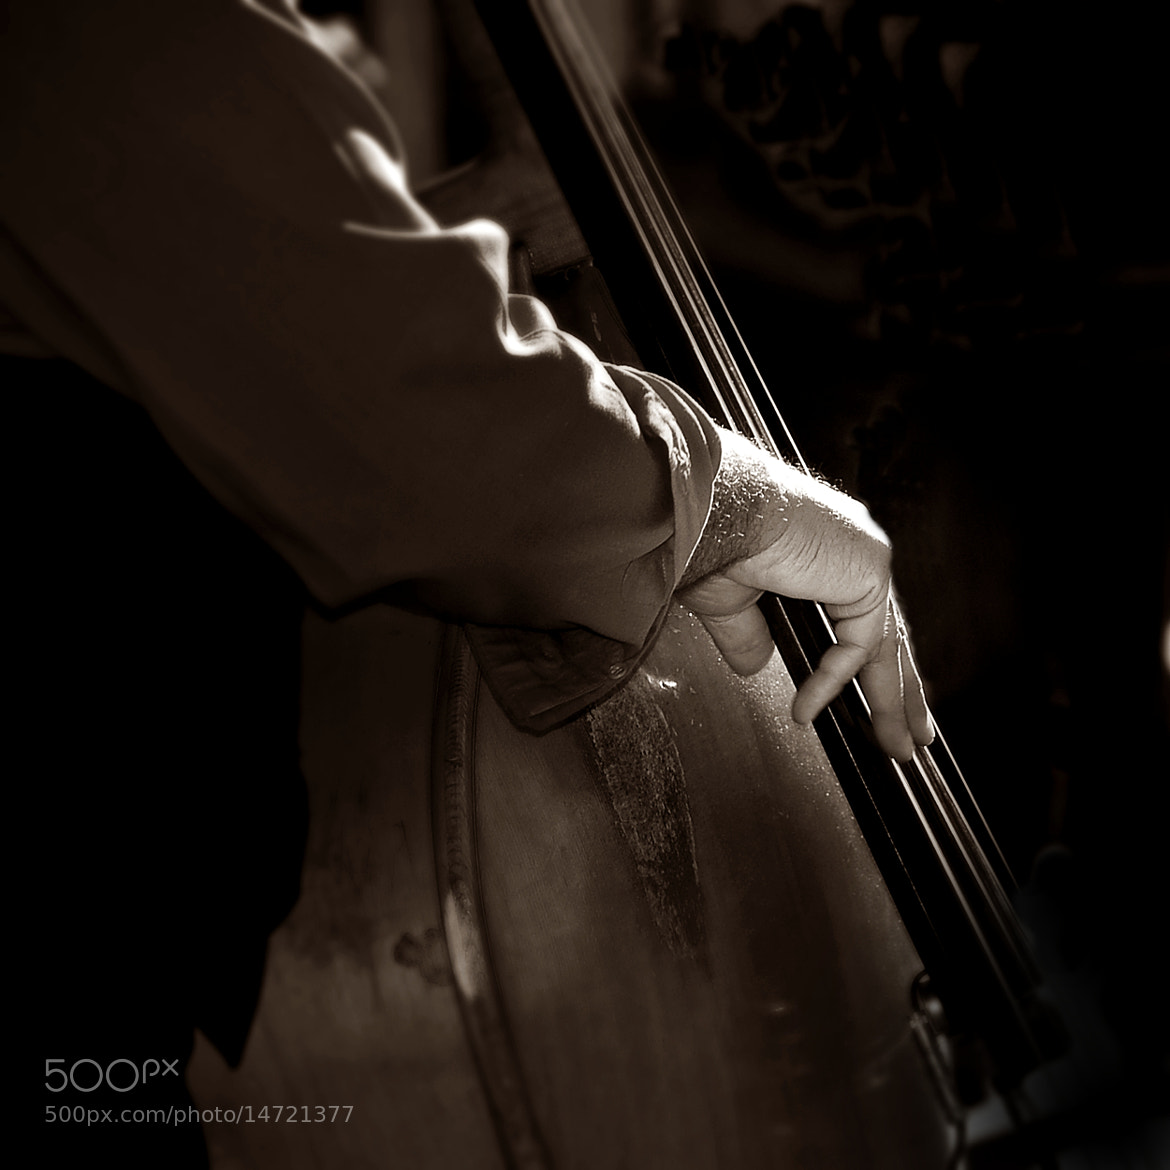 Photograph Jazzy Hand by Mojca Savicki on 500px